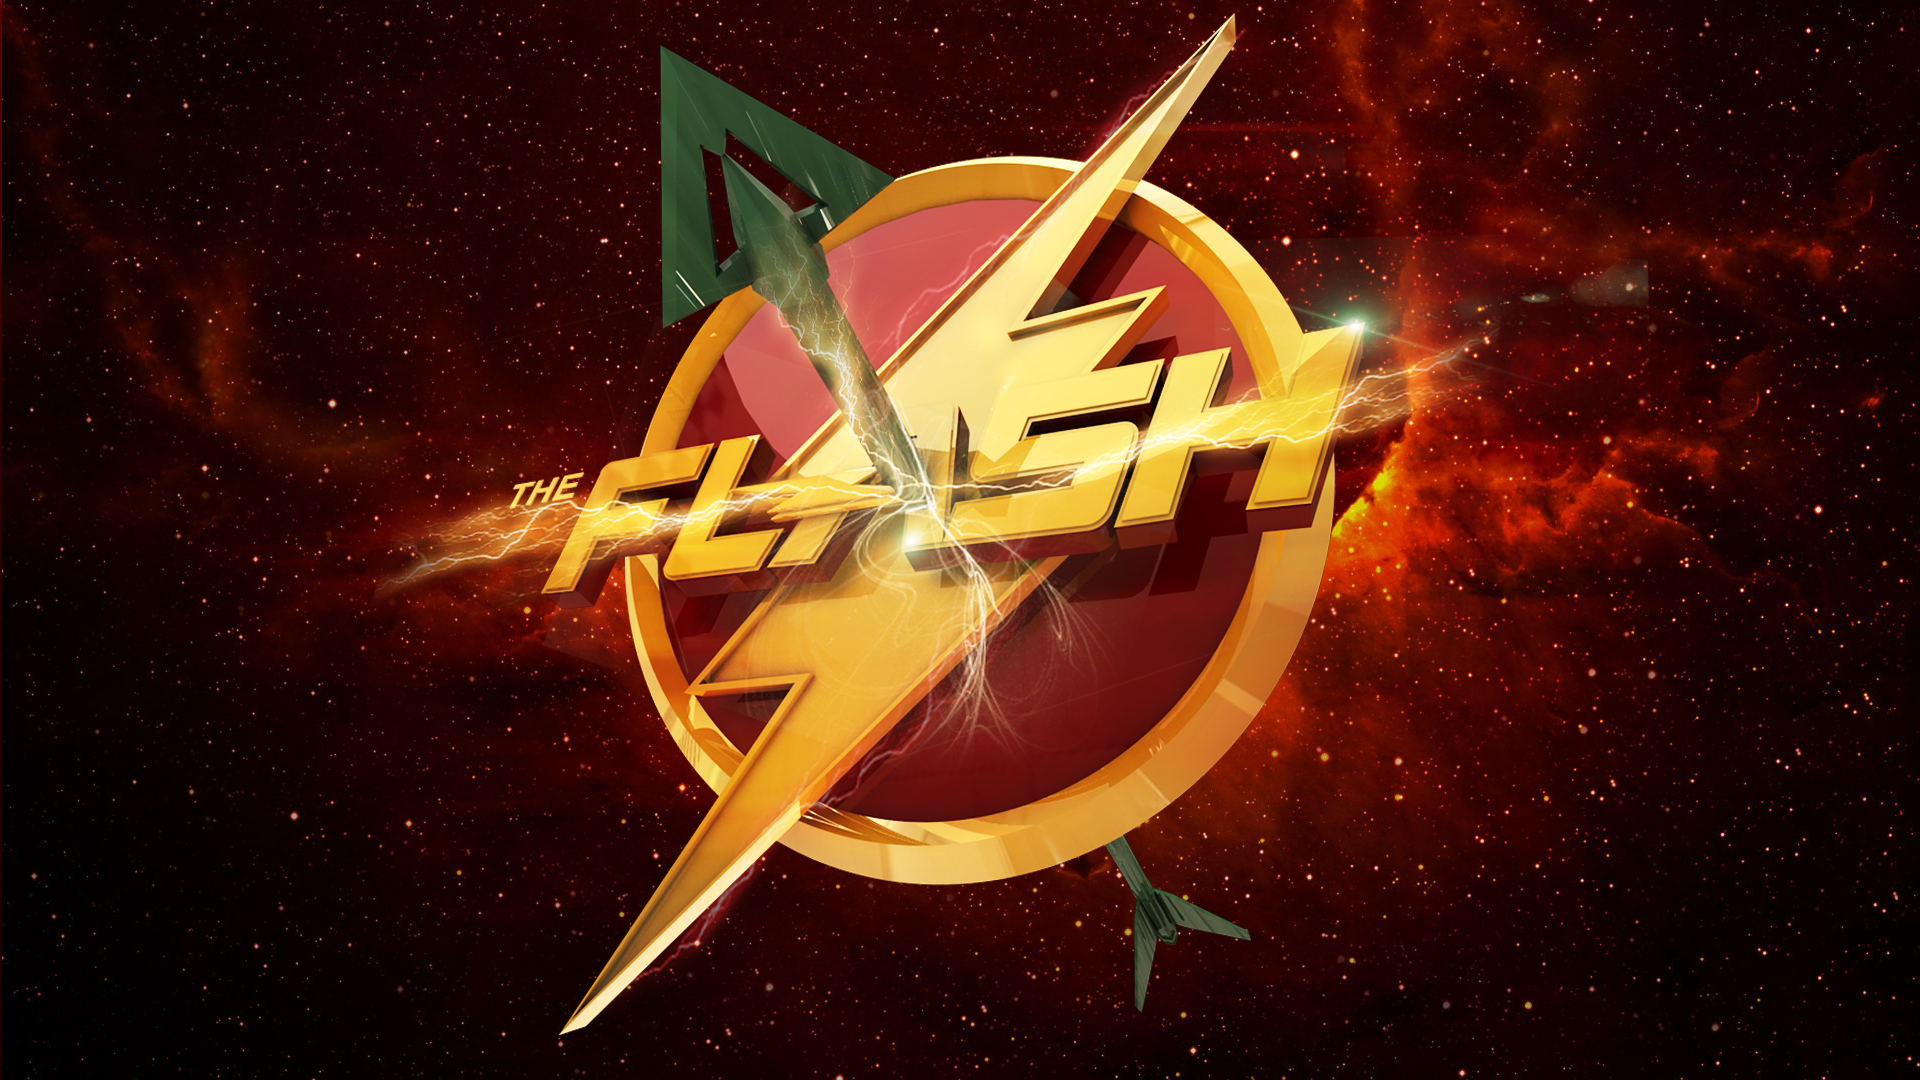 Flash vs Arrow HD Desktop Wallpapers digitalhintnet 1920x1080